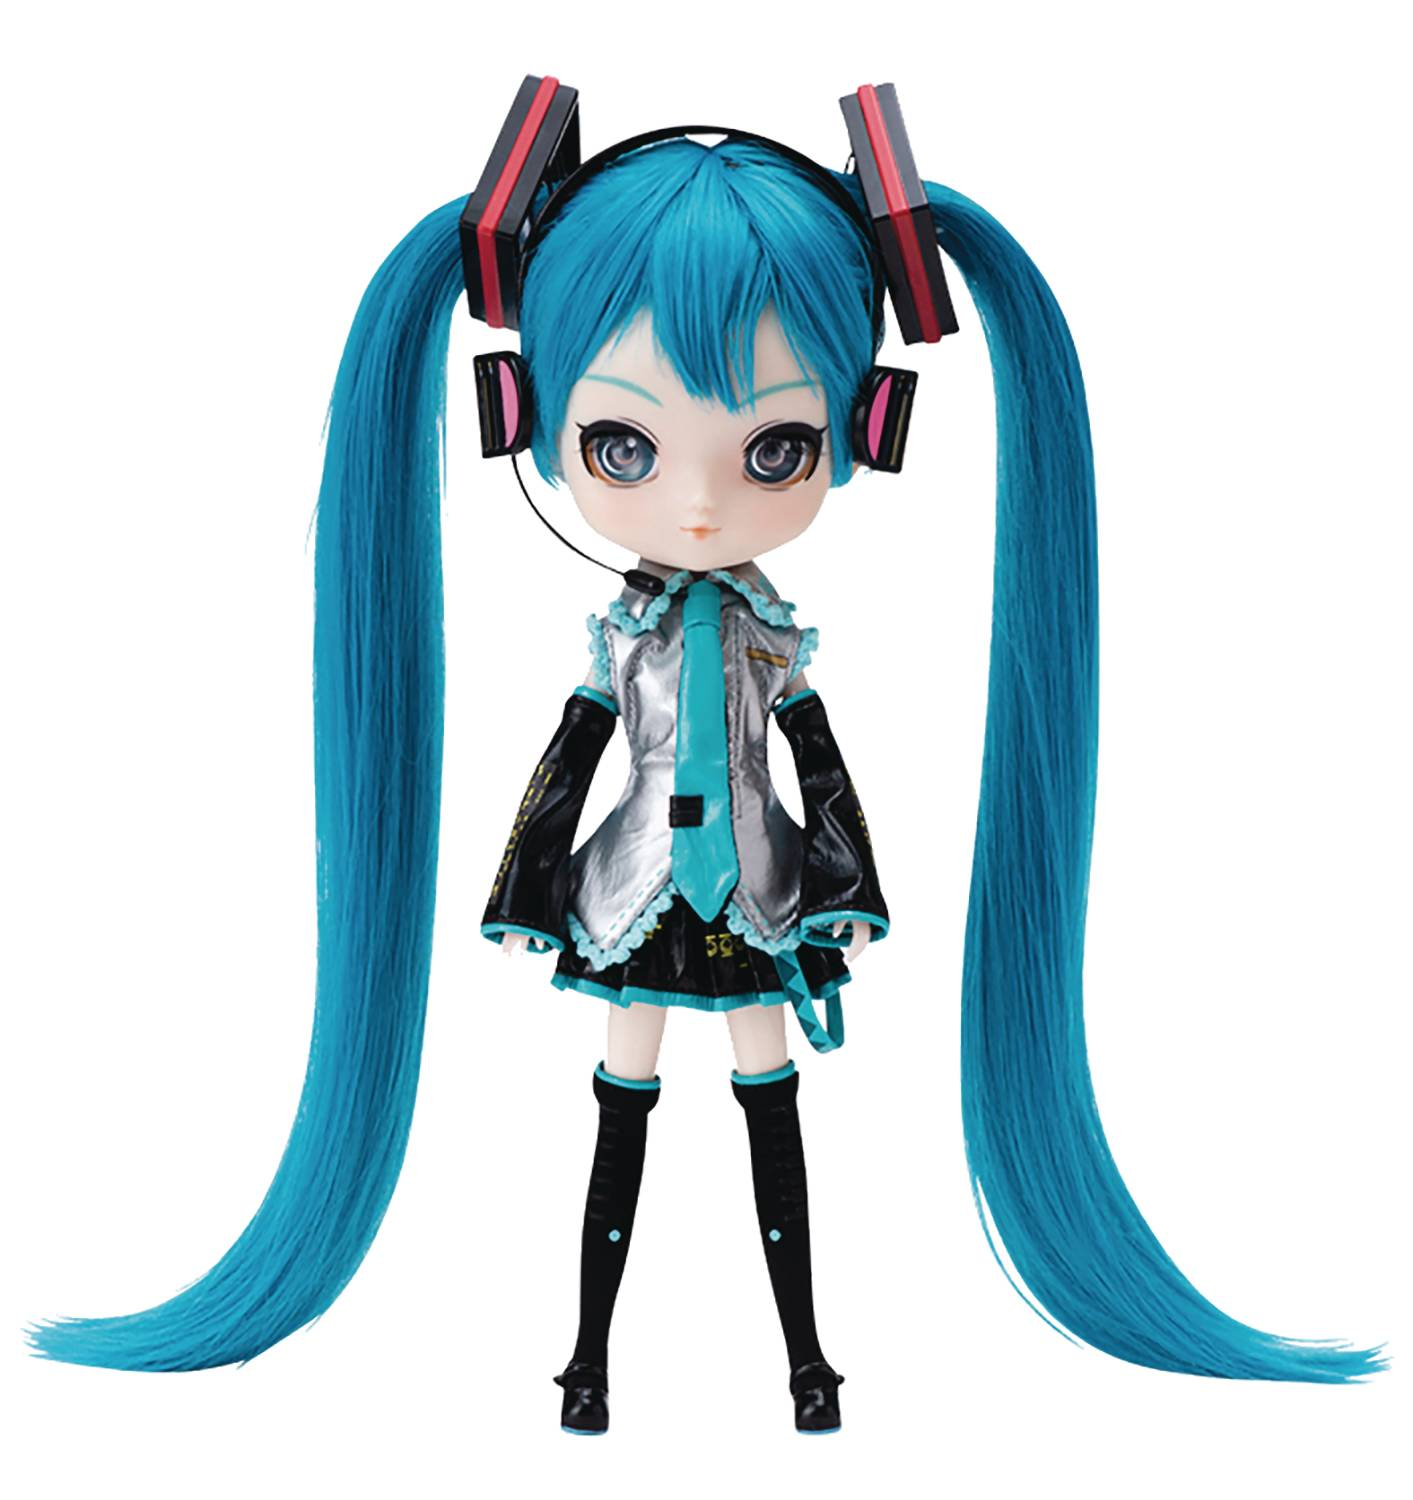 HATSUNE MIKU COLLECTION DOLL SERIES COMPLETE DOLL